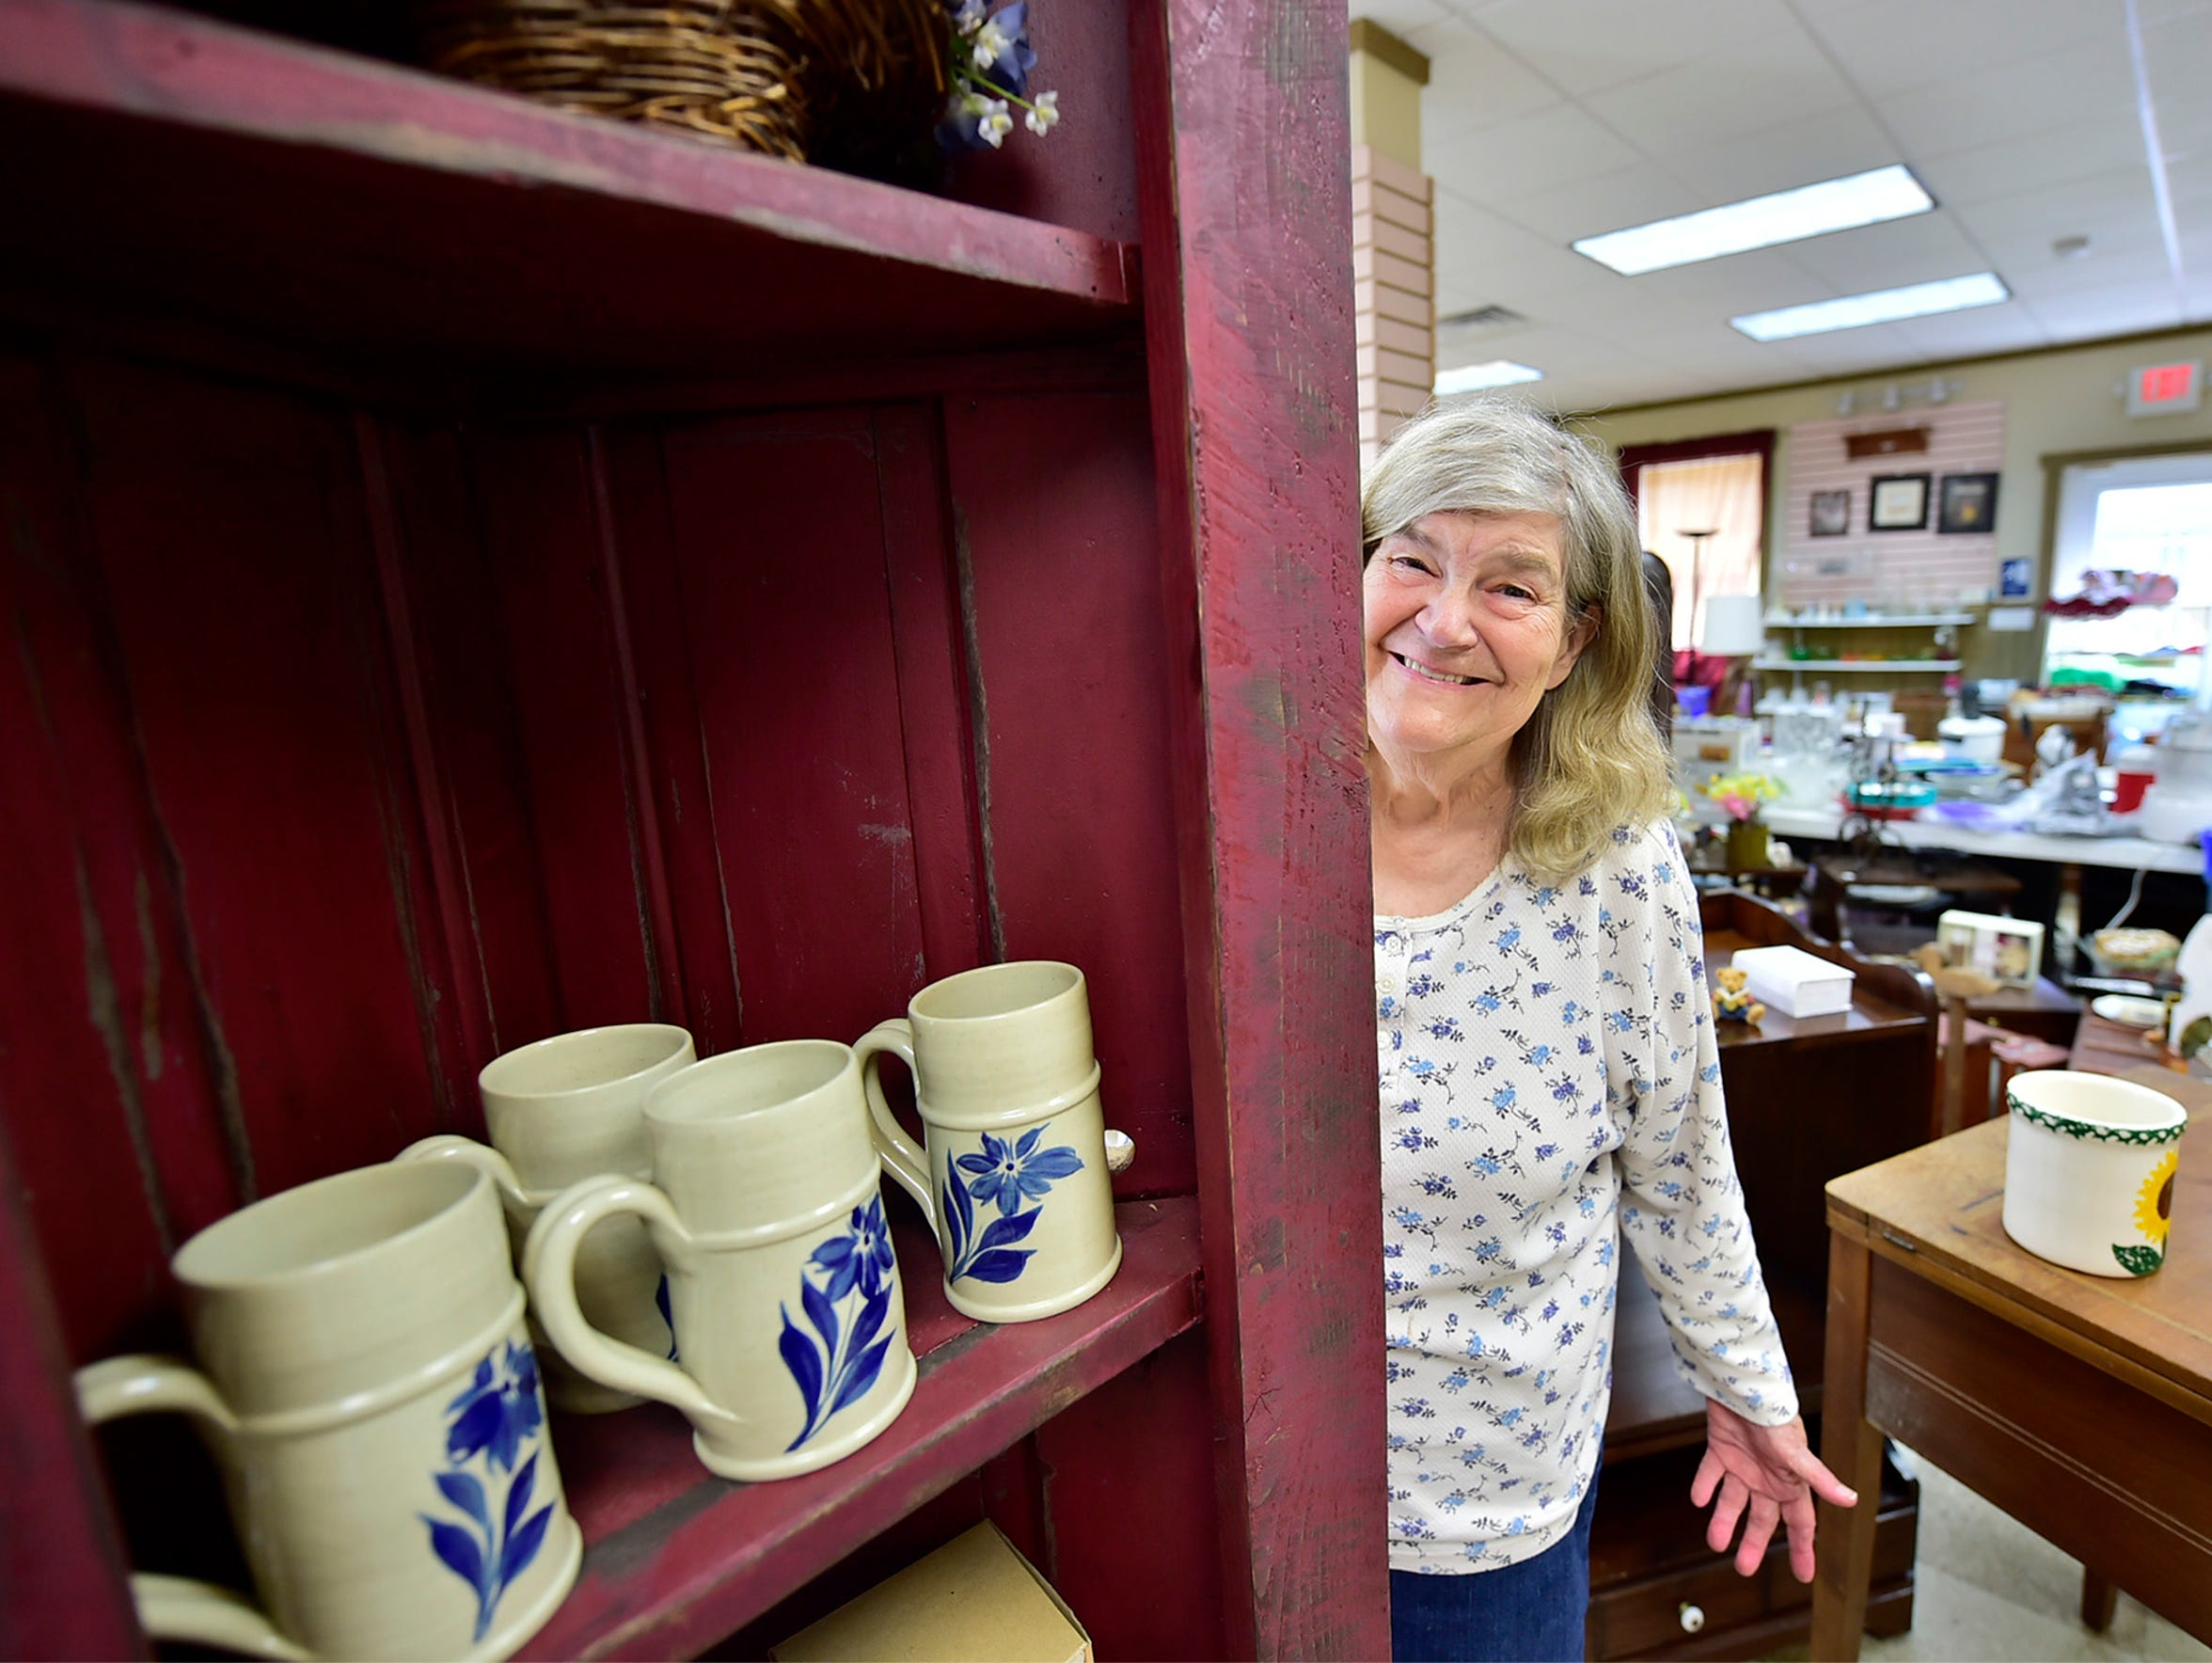 Ruth Mowen is the owner of Upscale Consignment shop,